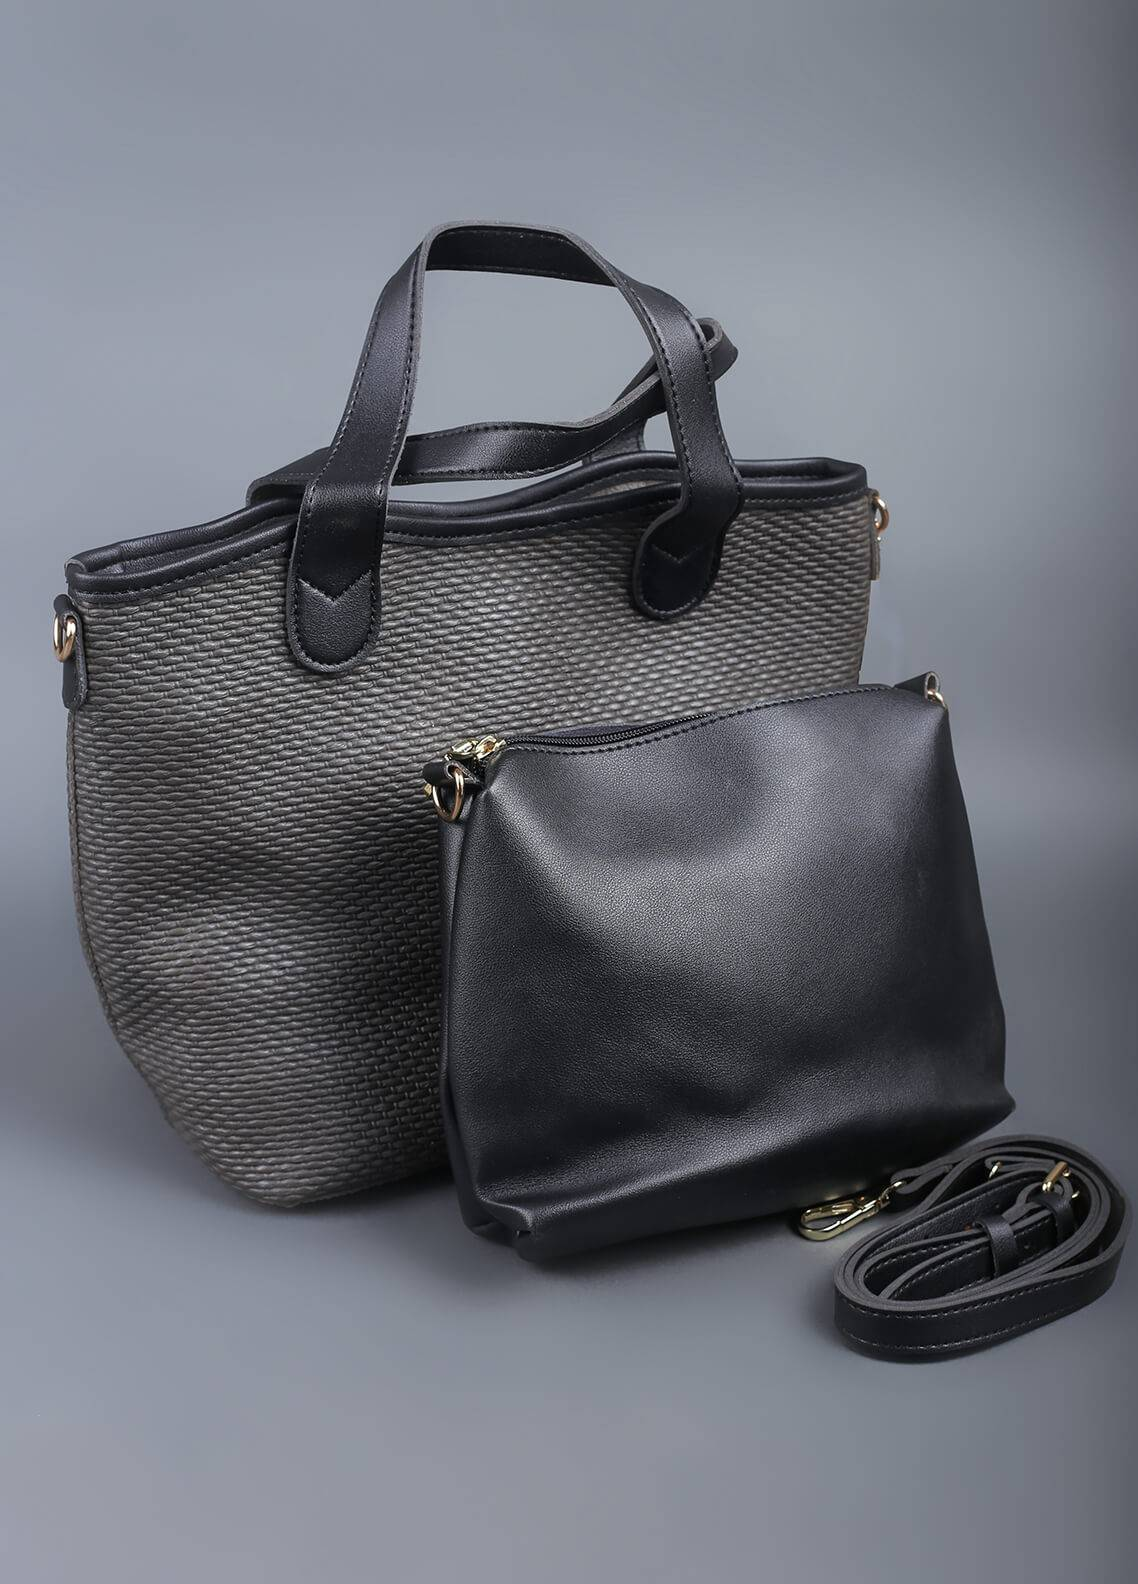 Sanaulla Exclusive Range PU Leather Tote  Handbags for Women - Black with Textured